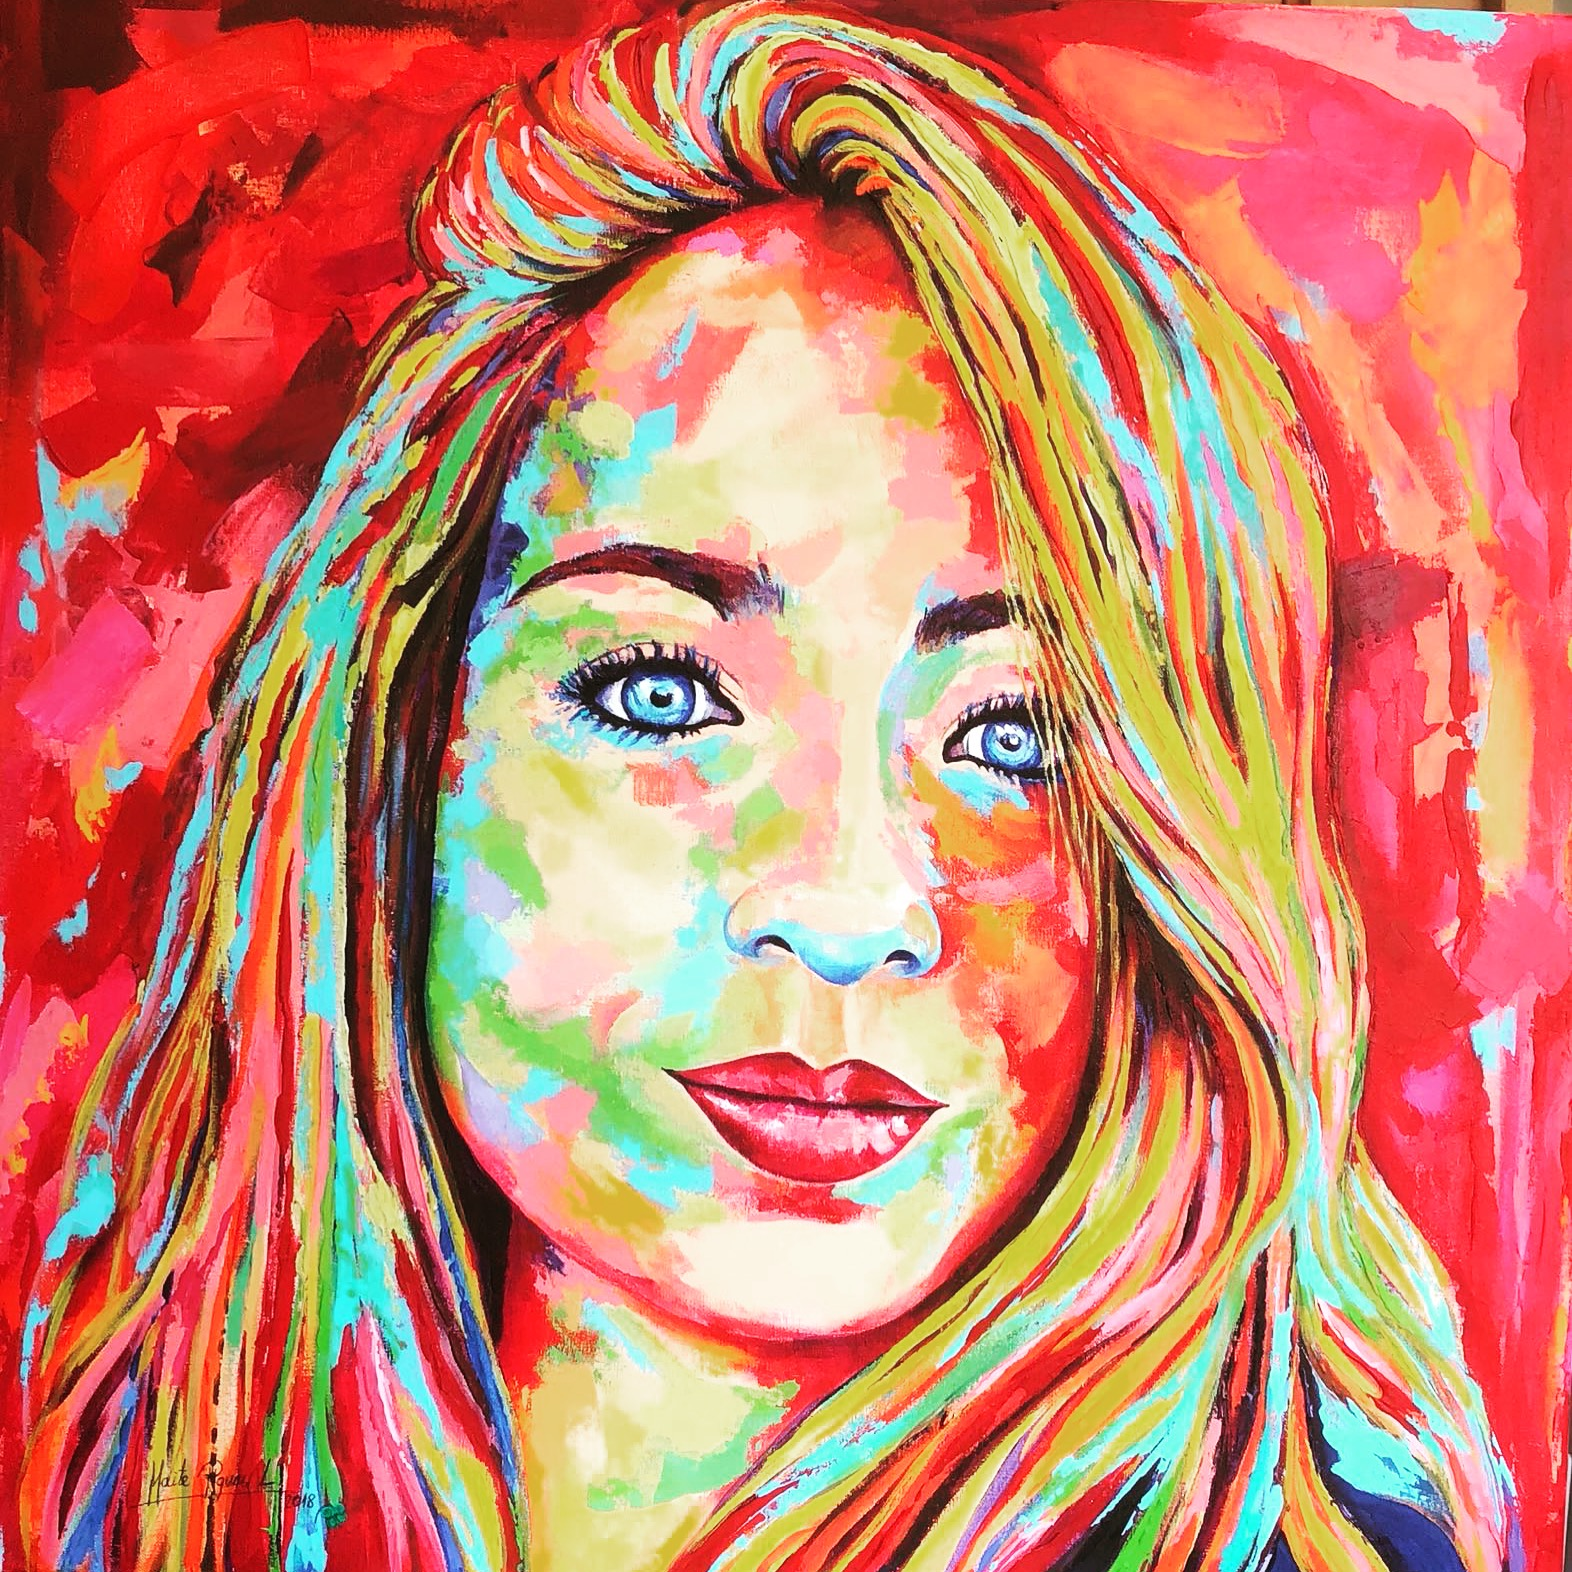 painting, art, Maite Rodriguez, oil painting, modern art, expressionism